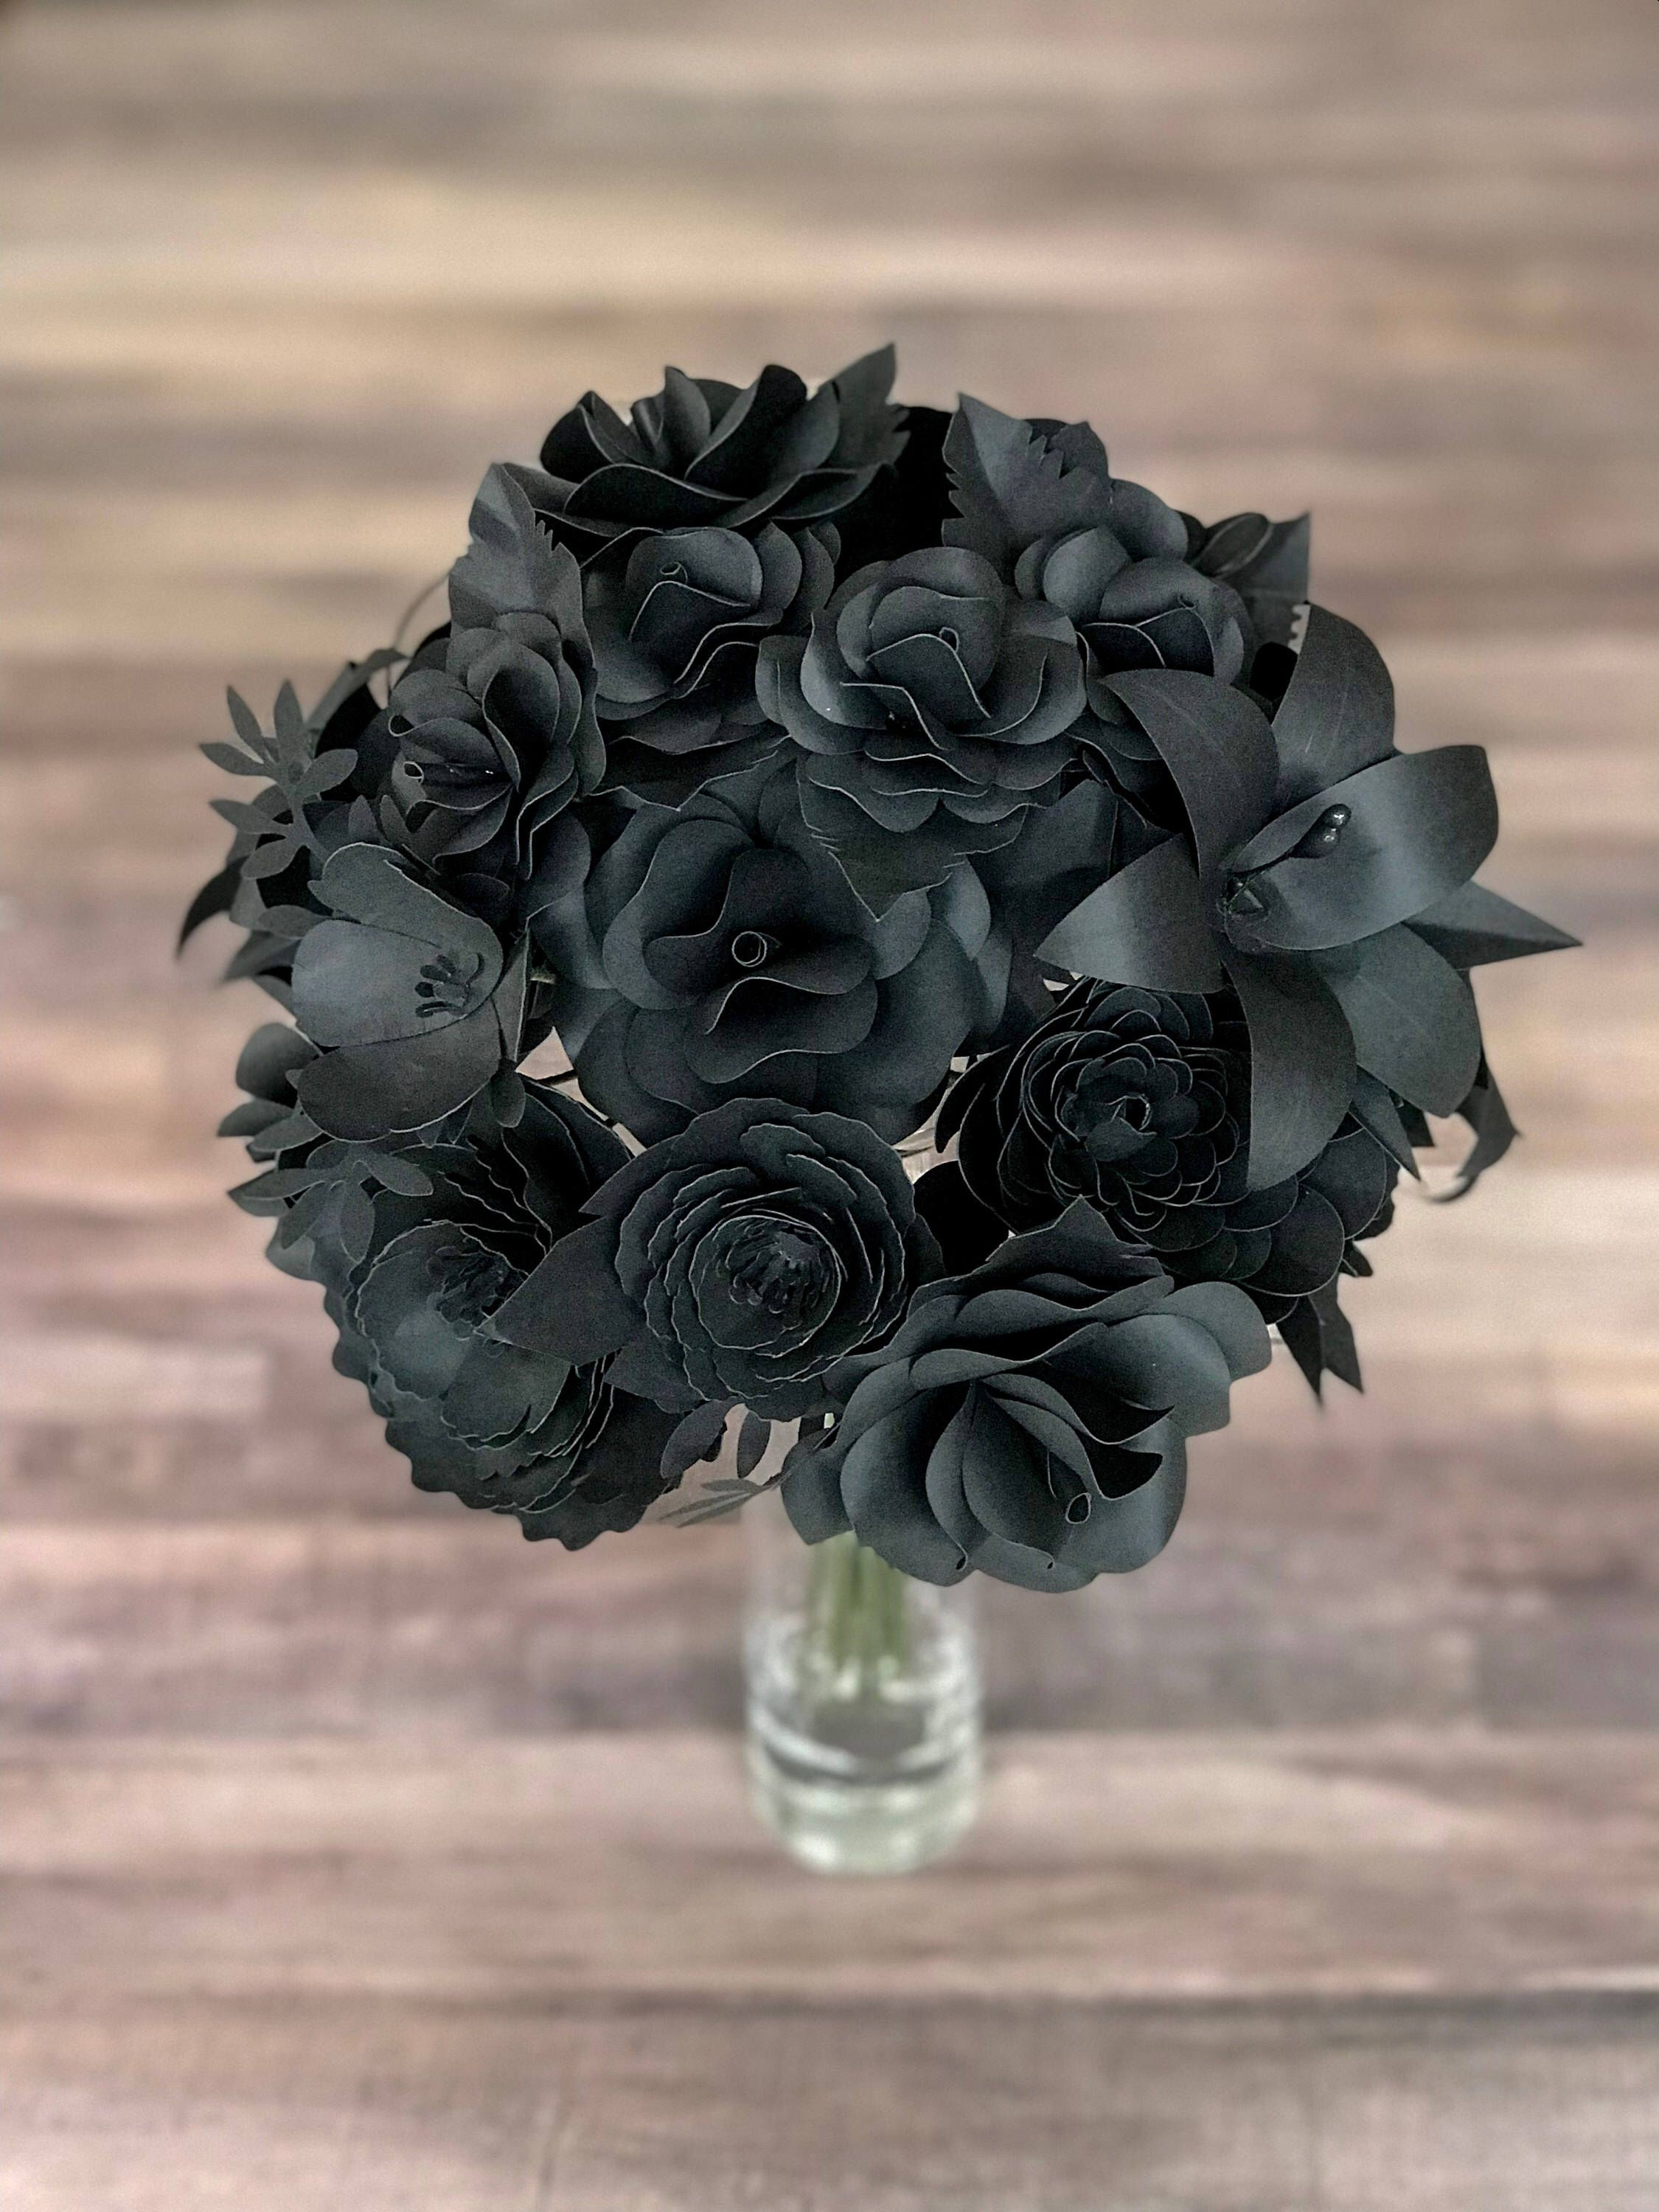 Black flowers paper flower bouquet gothic bouquet black wedding black flowers paper flower bouquet gothic bouquet black wedding goth wedding black bouquet black paper flowers goth bouquet macabre paper blossoms izmirmasajfo